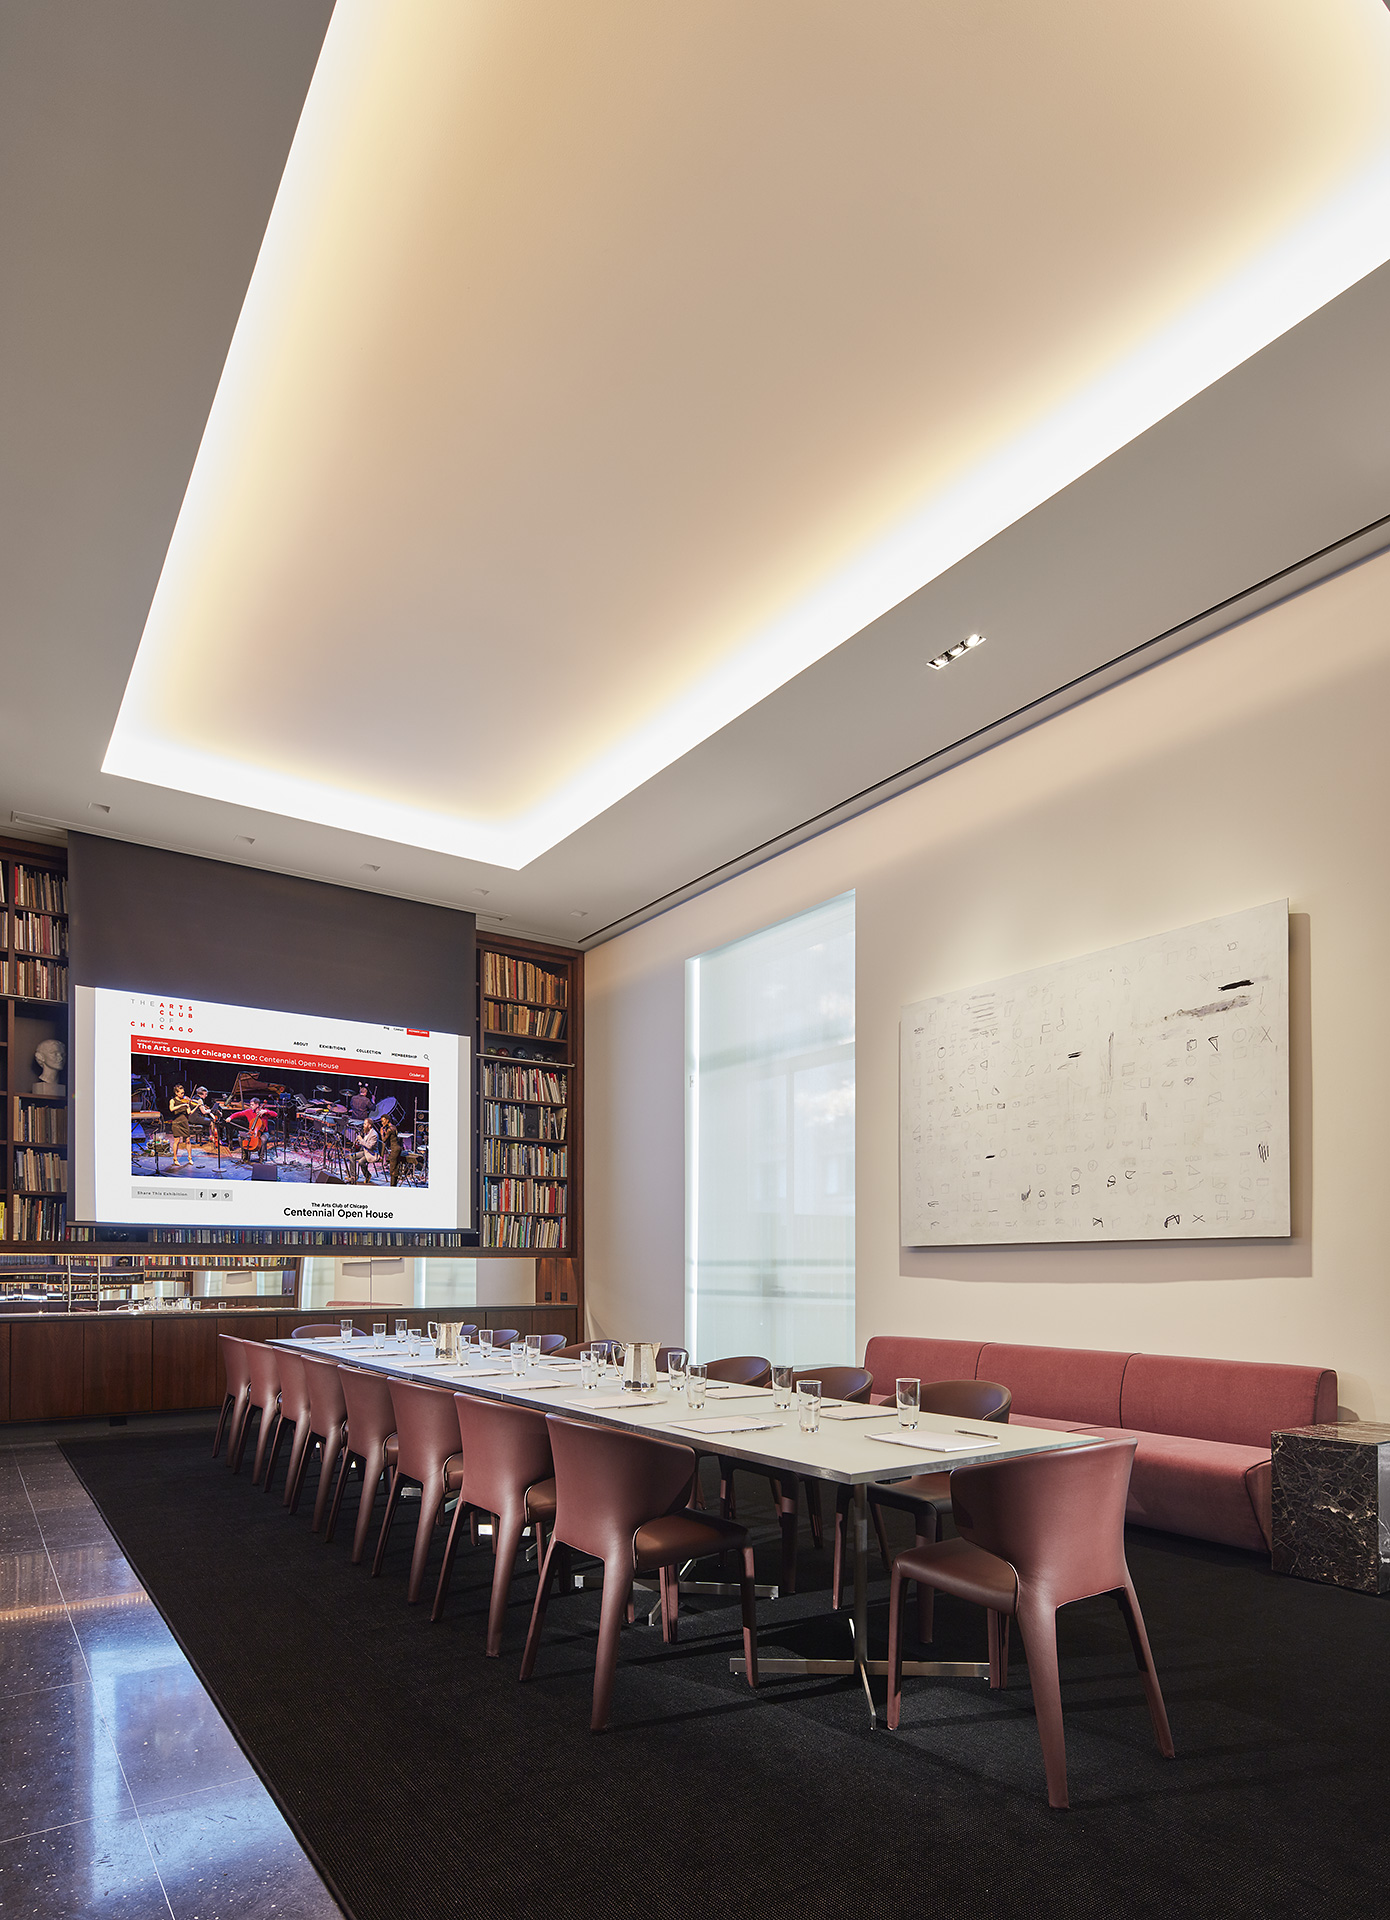 Conference Room Lighting Design: Arts Club Of Chicago Drawing Room